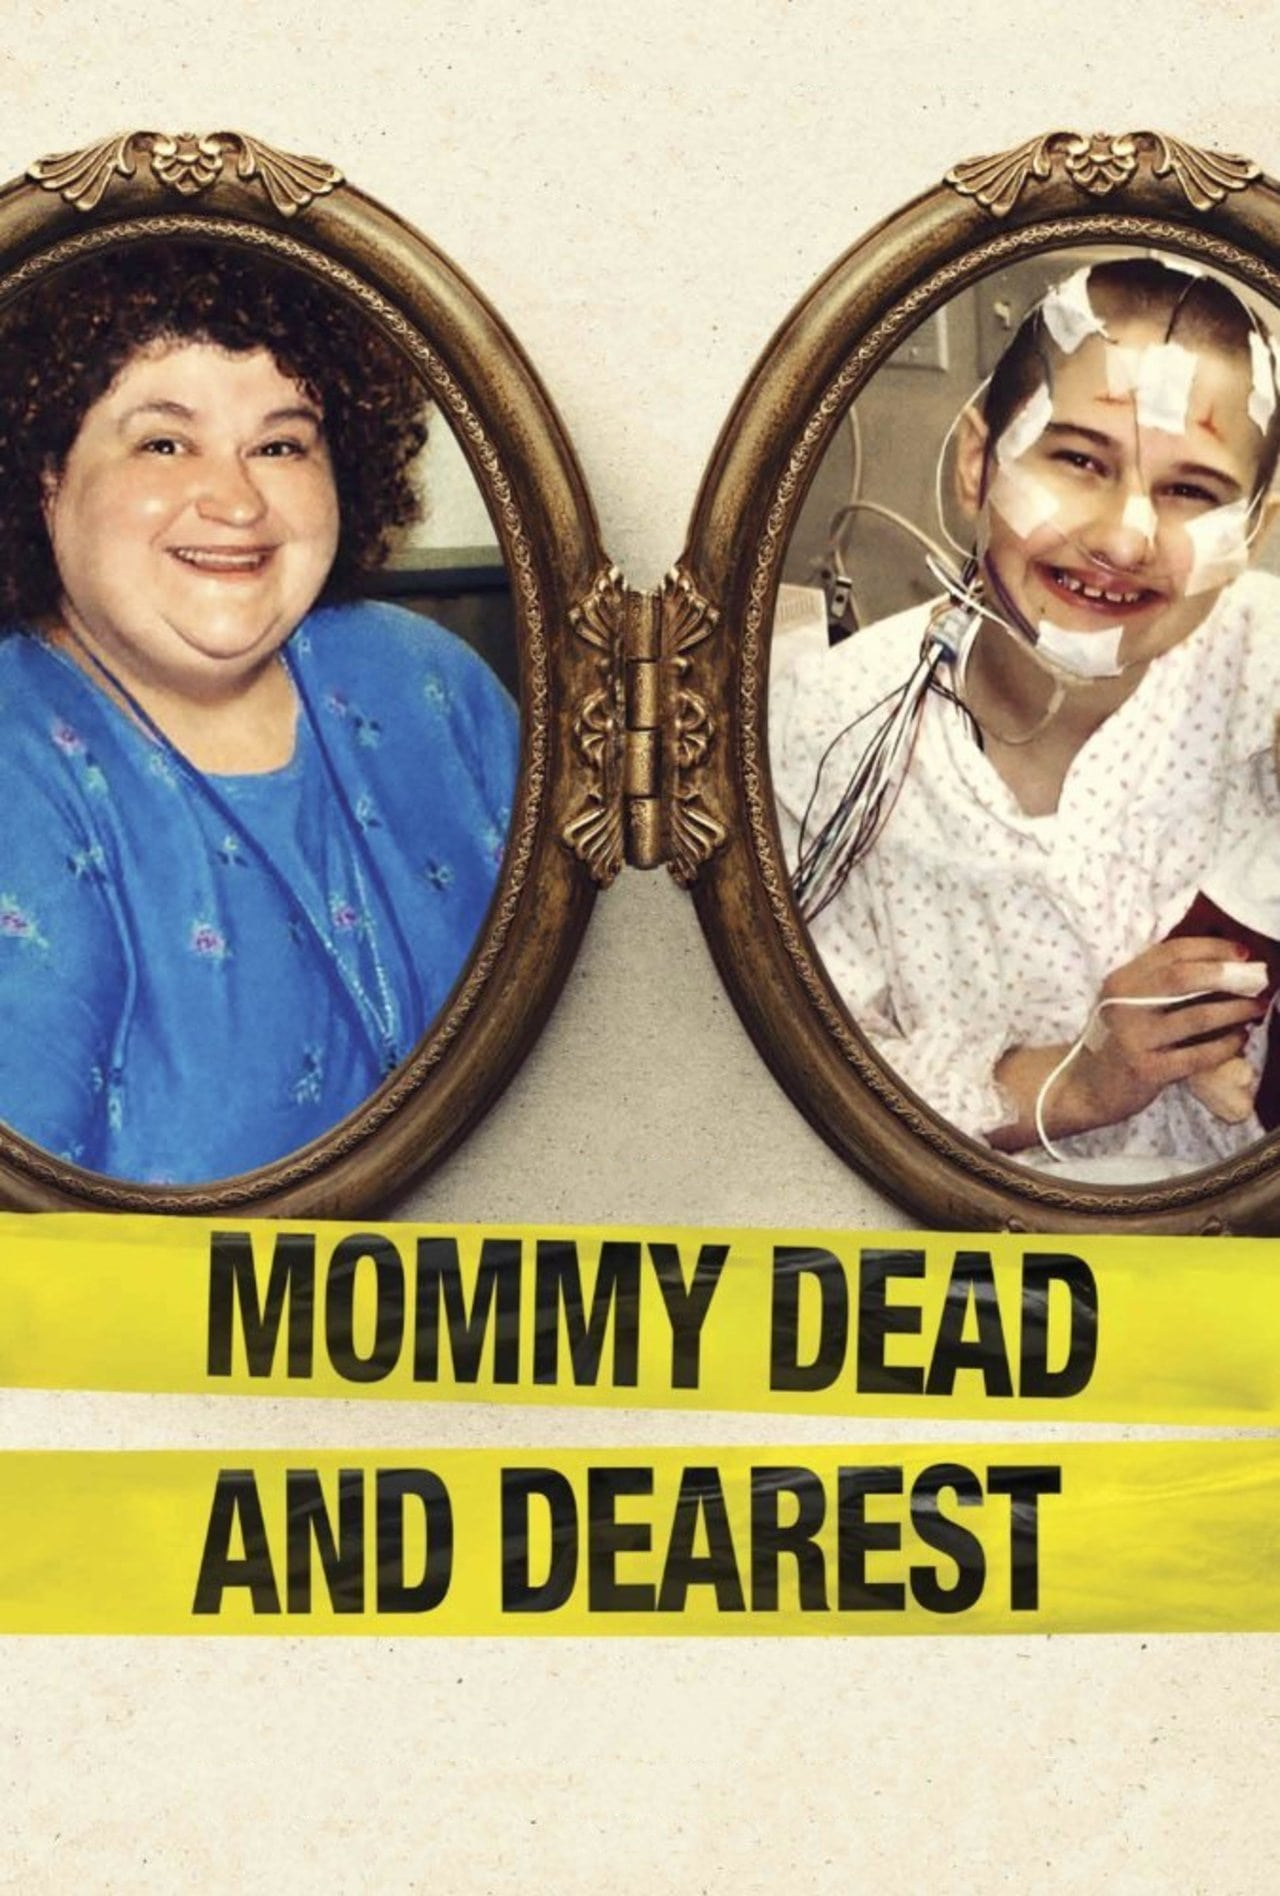 MOMMY DEAD AND DEAREST 123movies